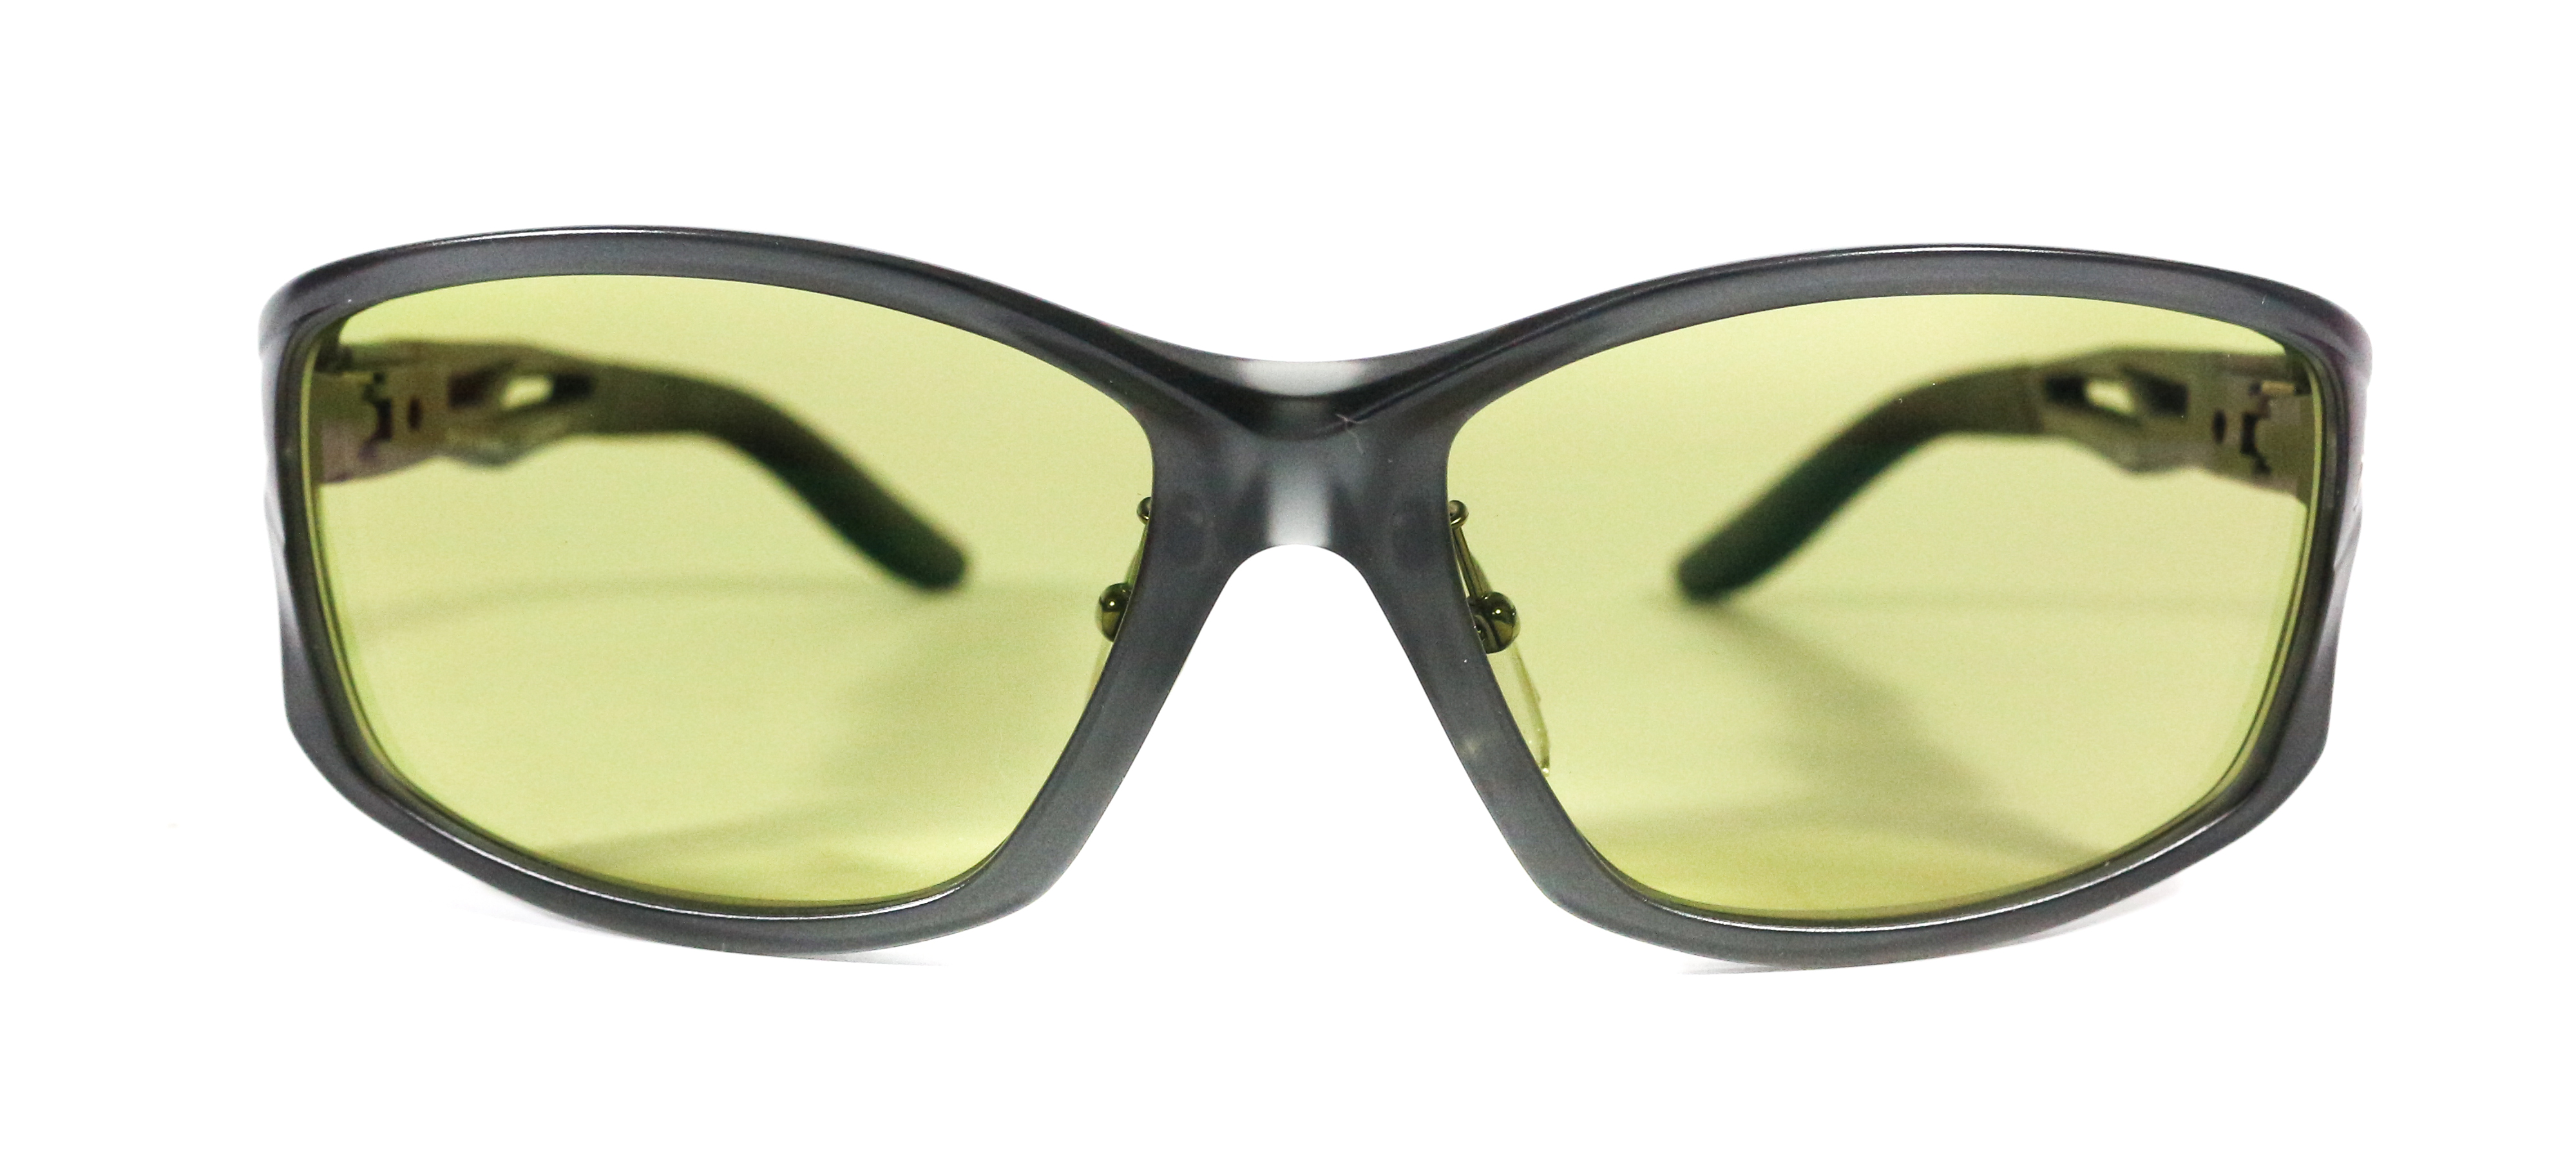 Zeal Polarised Fishing Sunglasses Stealth F-1382 CLR GRAY EASE GREEN (5224)